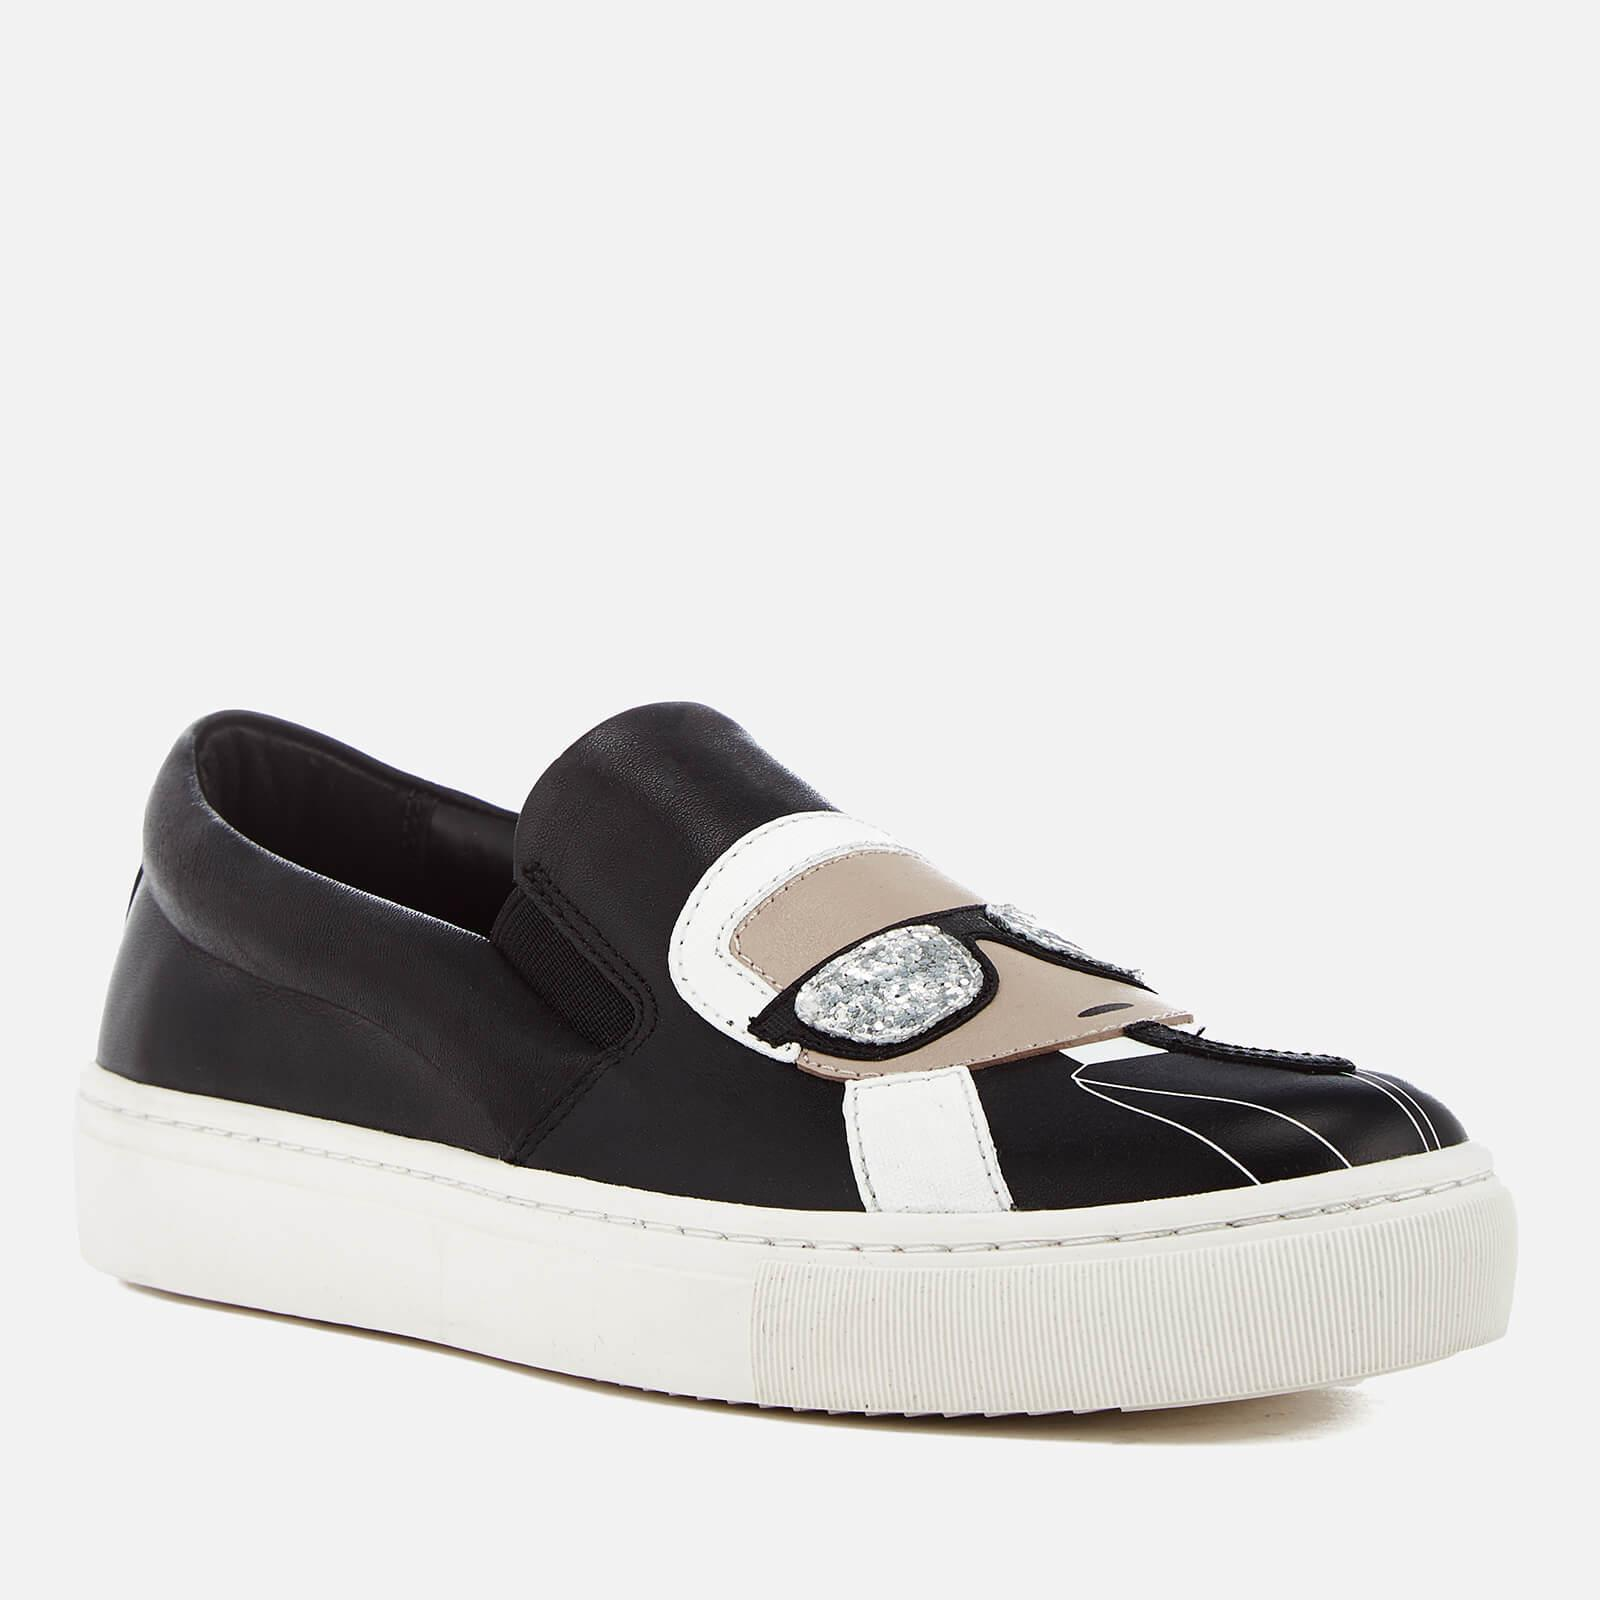 b319937bf8e Karl Lagerfeld - Black Women s Kupsole Leather Karl Ikonic Slip-on Trainers  - Lyst. View fullscreen